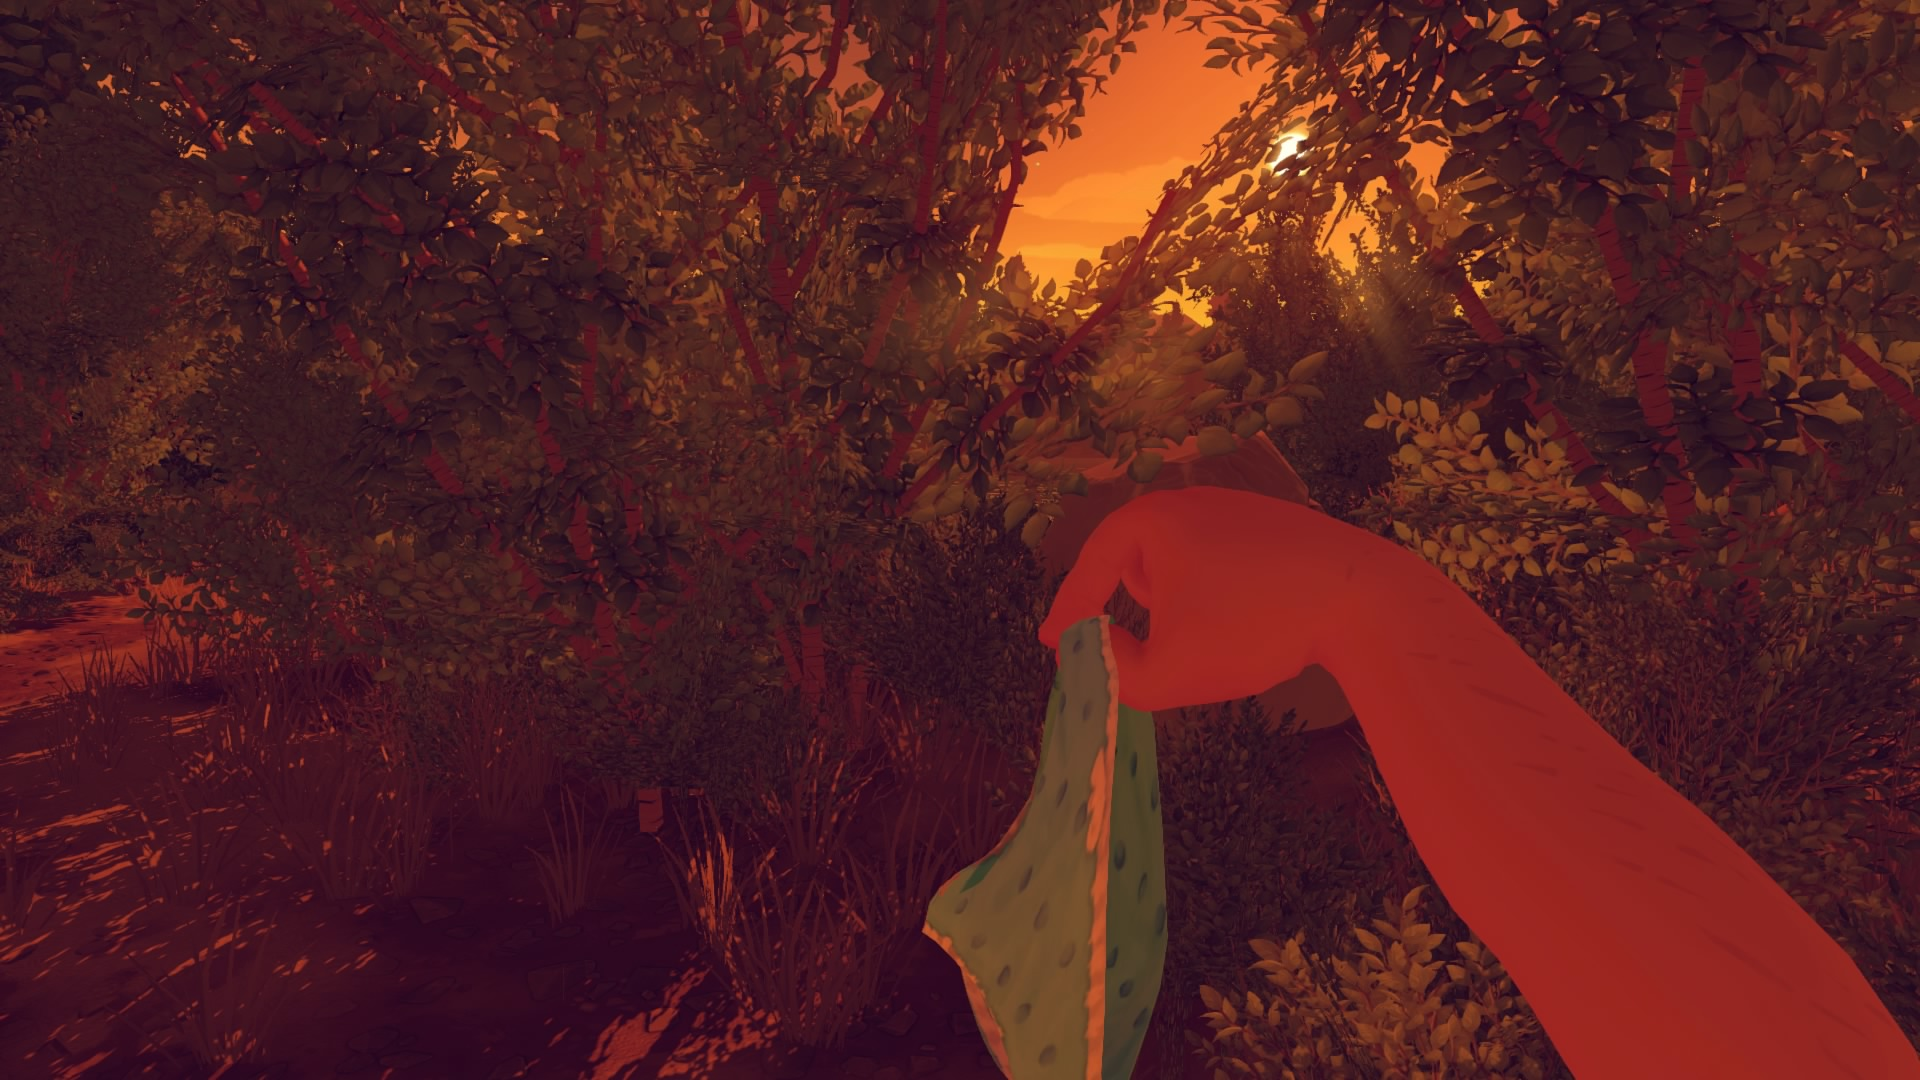 Video game tourism e04 nature and the sublime in firewatch various symbols and signs trigger imaginings of most exciting nature in the player biocorpaavc Choice Image